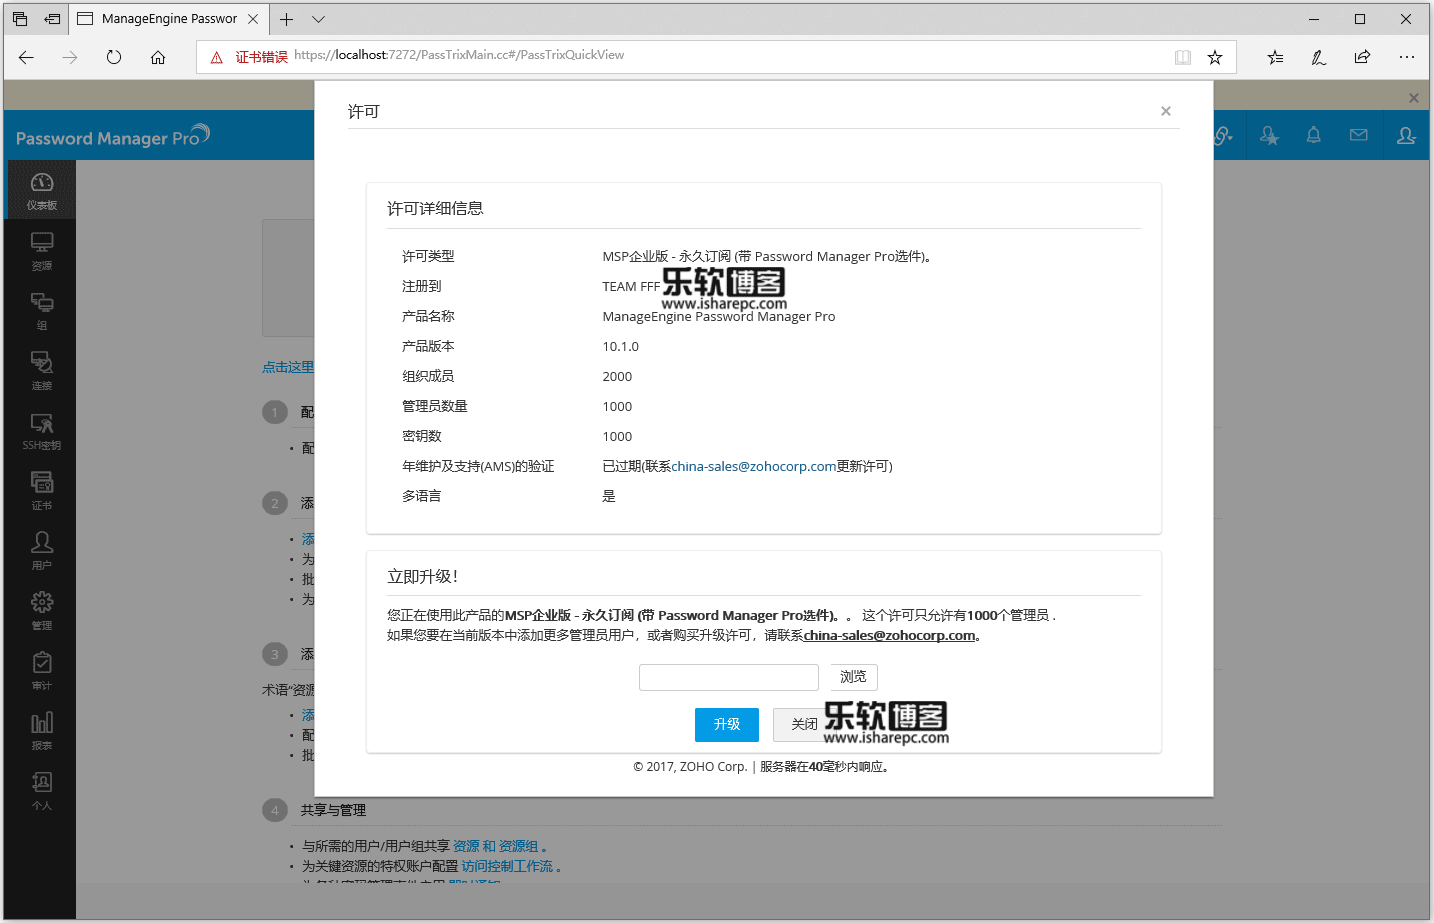 ManageEngine Password Manager Pro 10.1.0许可证